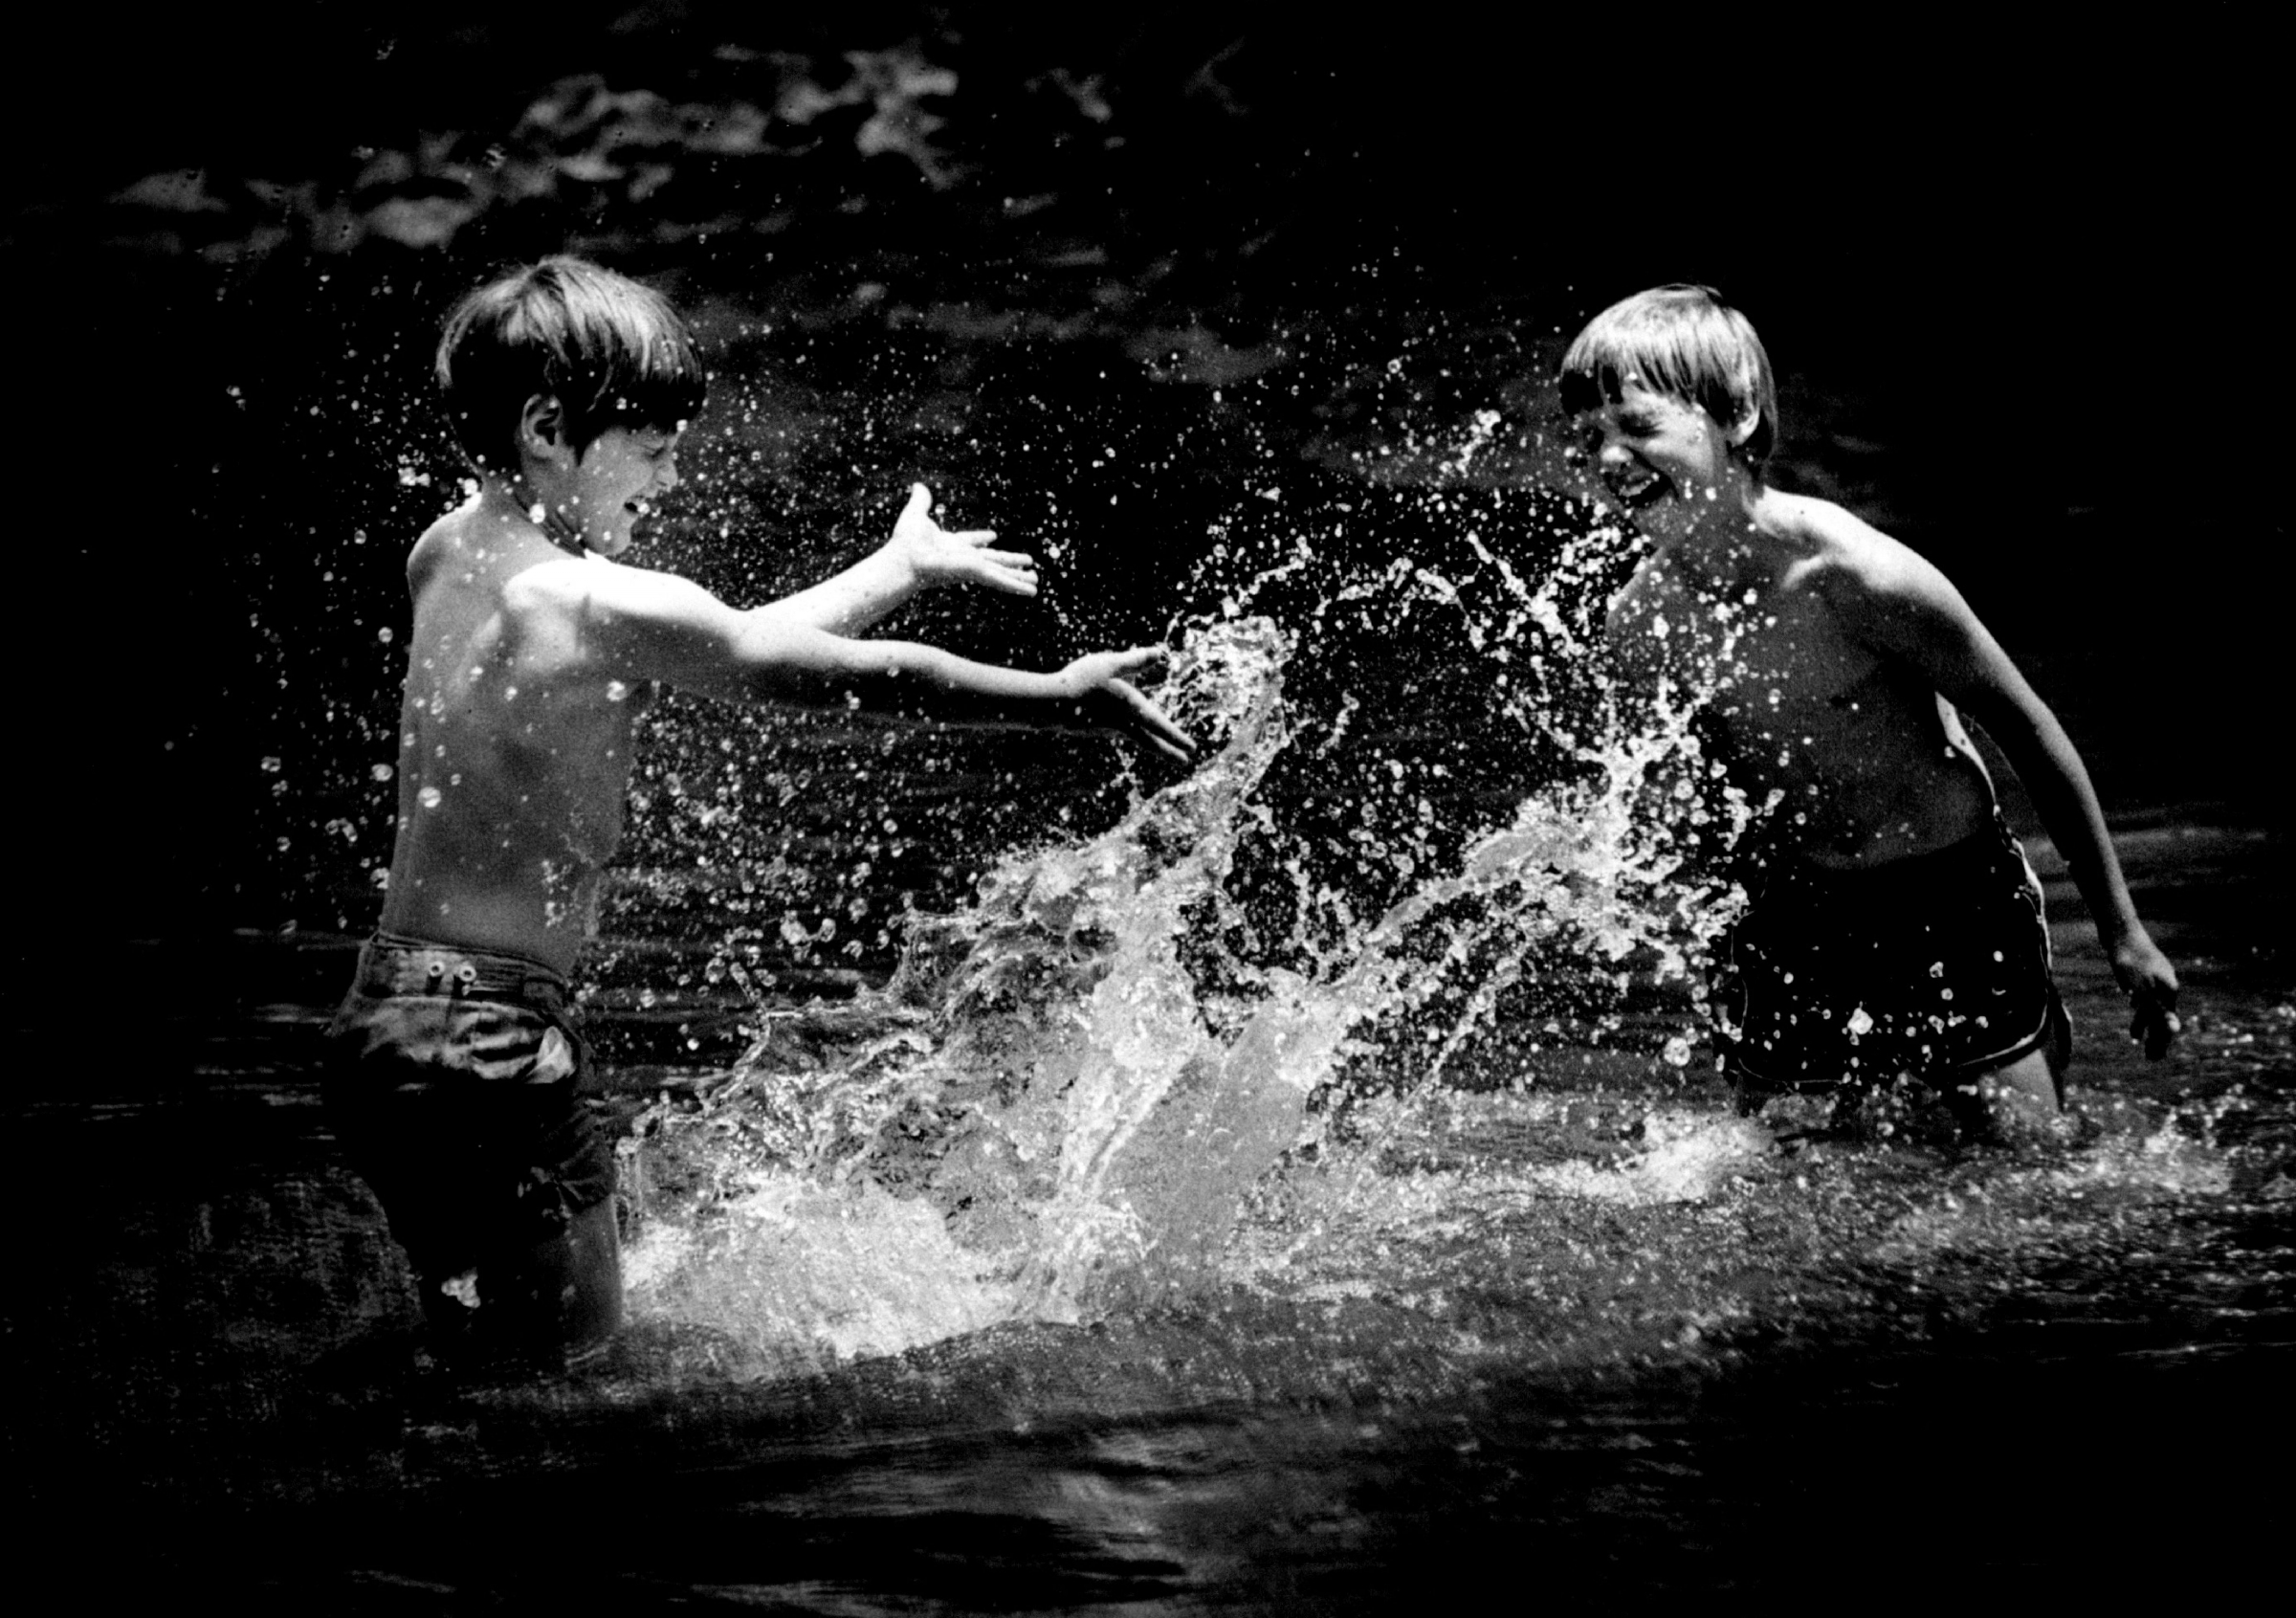 Splashing in either Briar or Little Sugar Creek near Park Road in July 1979, were Richard Allgood, left, and Lee Owings, both 8. Photo: Charlotte Observer archives